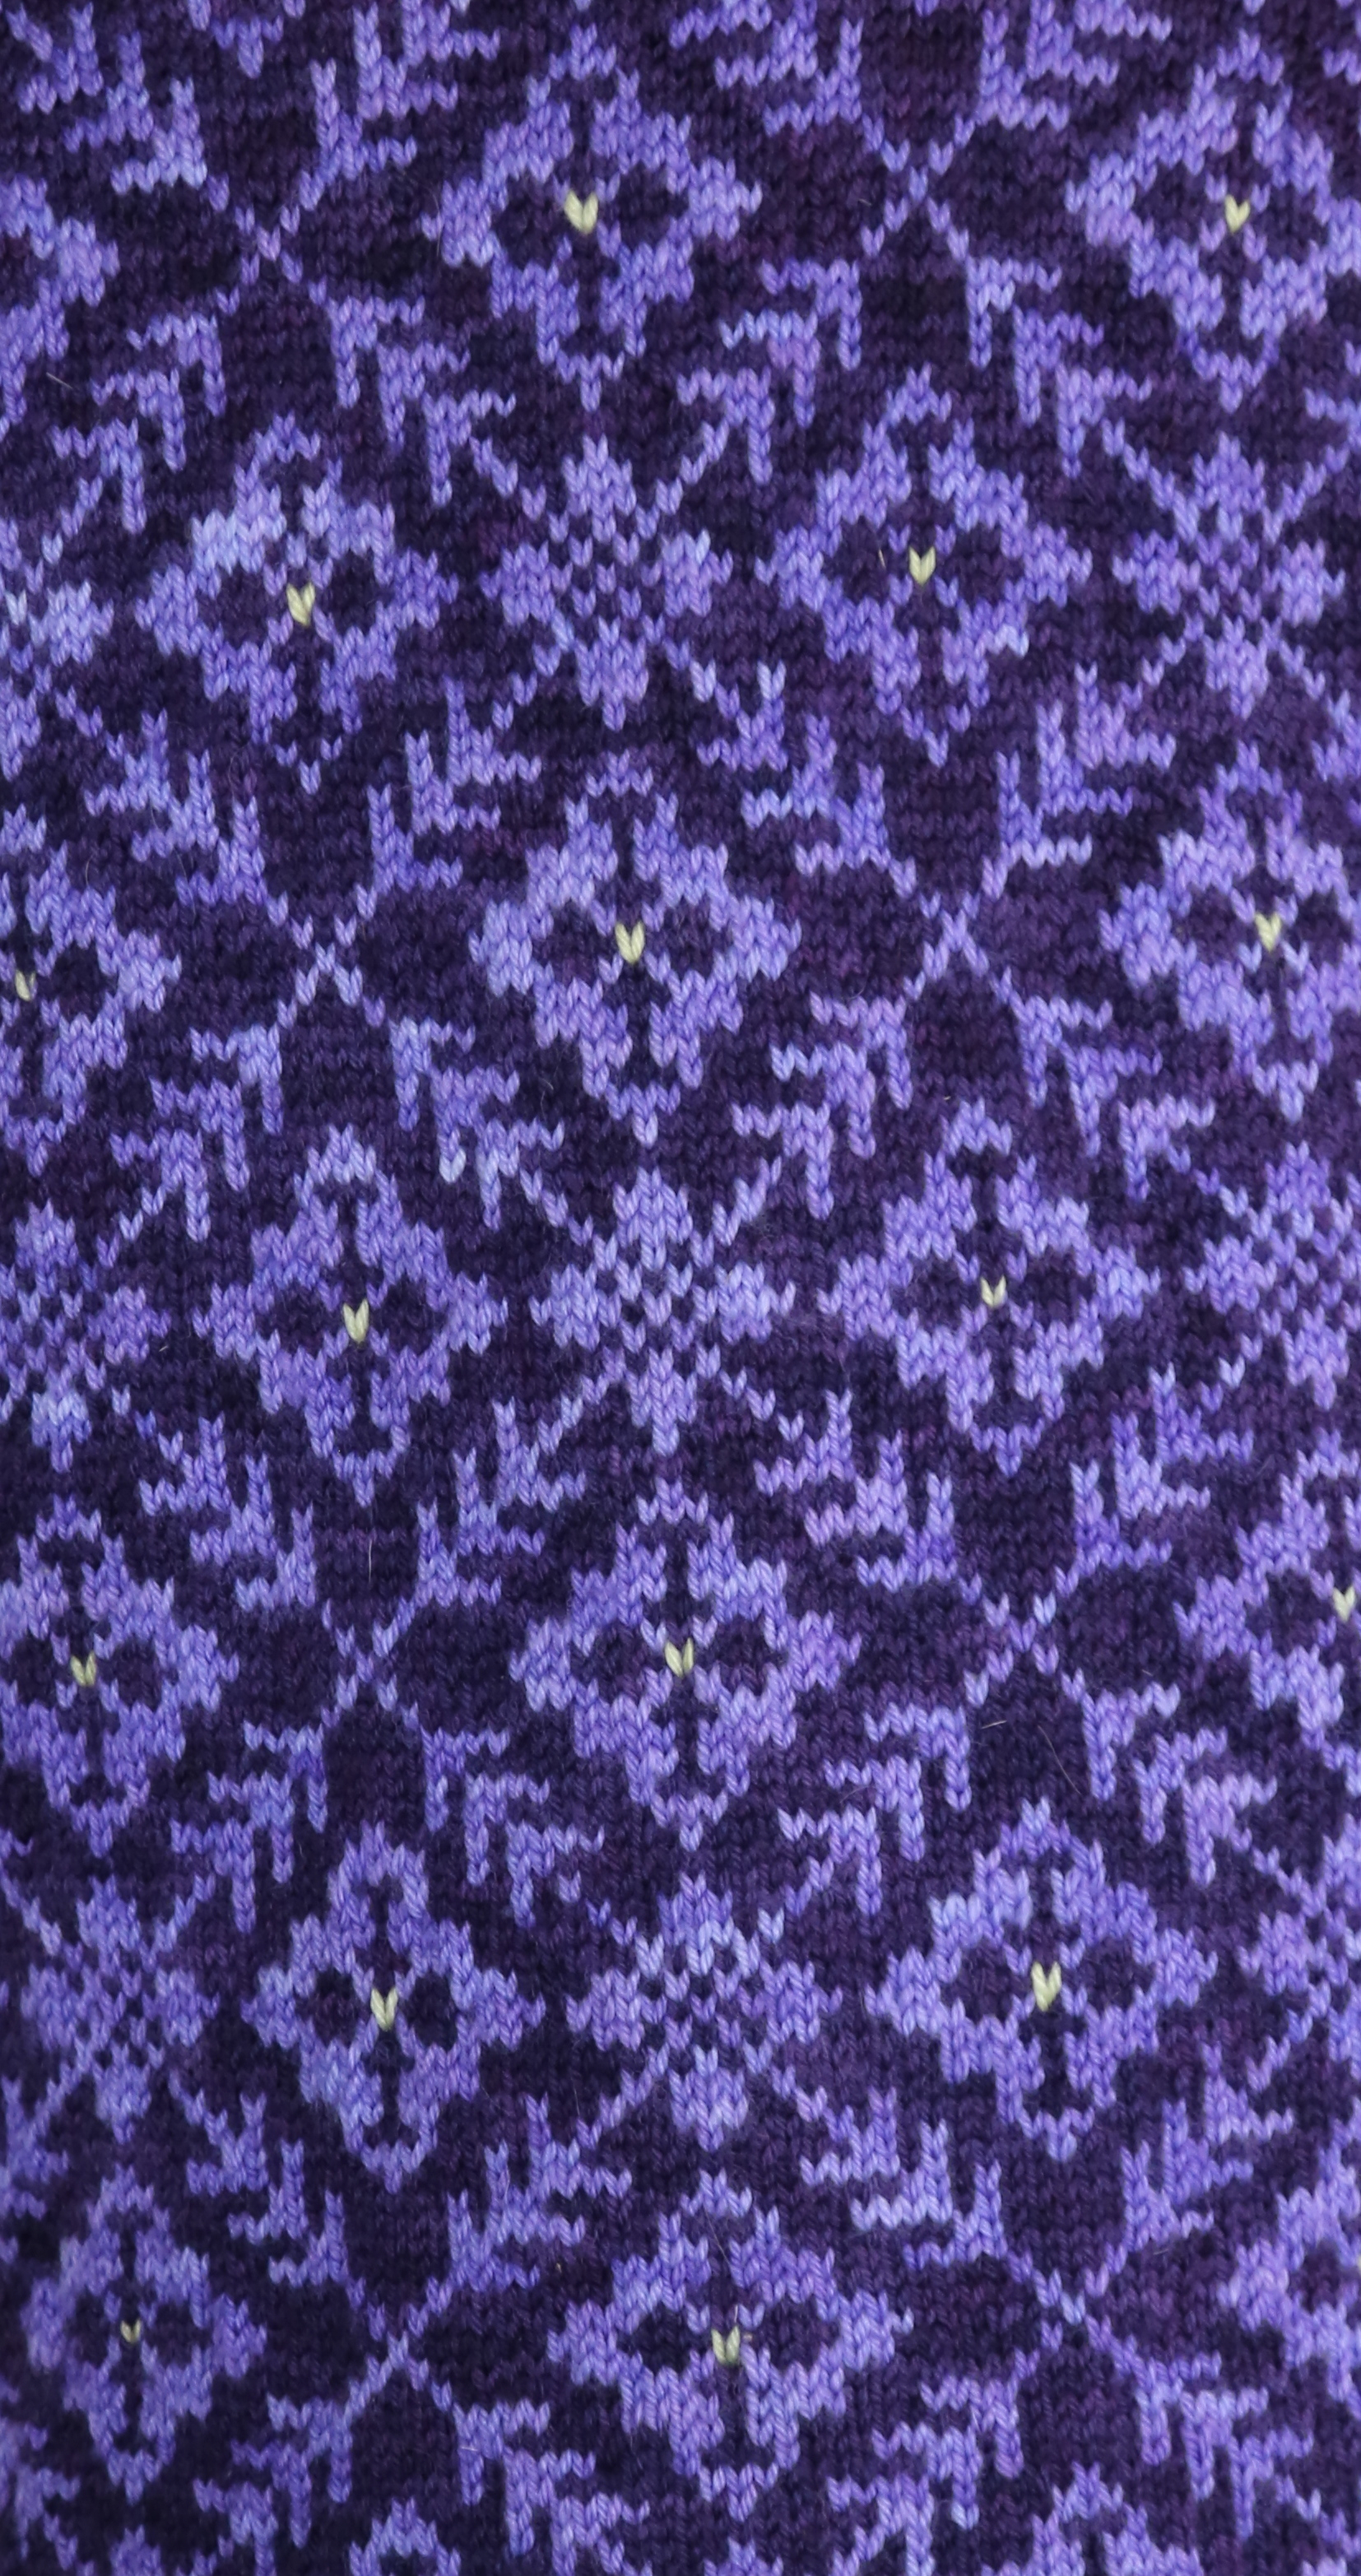 purple-vest-pattern-swatch